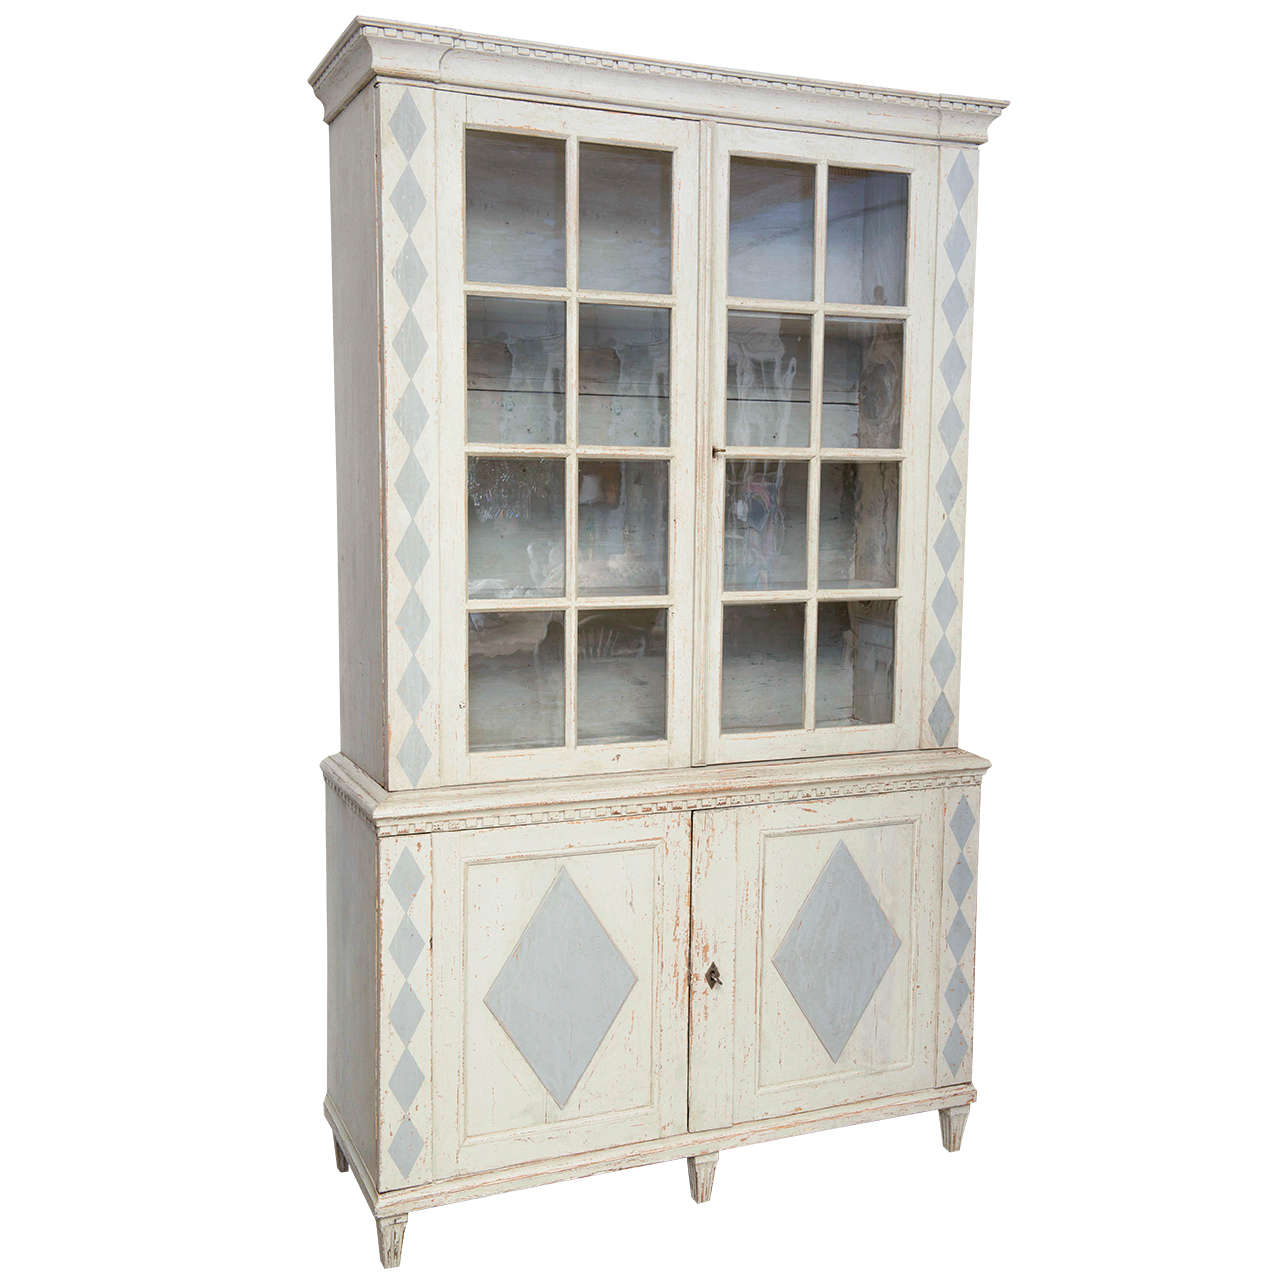 18th Century Antique Gustavian Swedish Cabinet With Original Glass Doors For